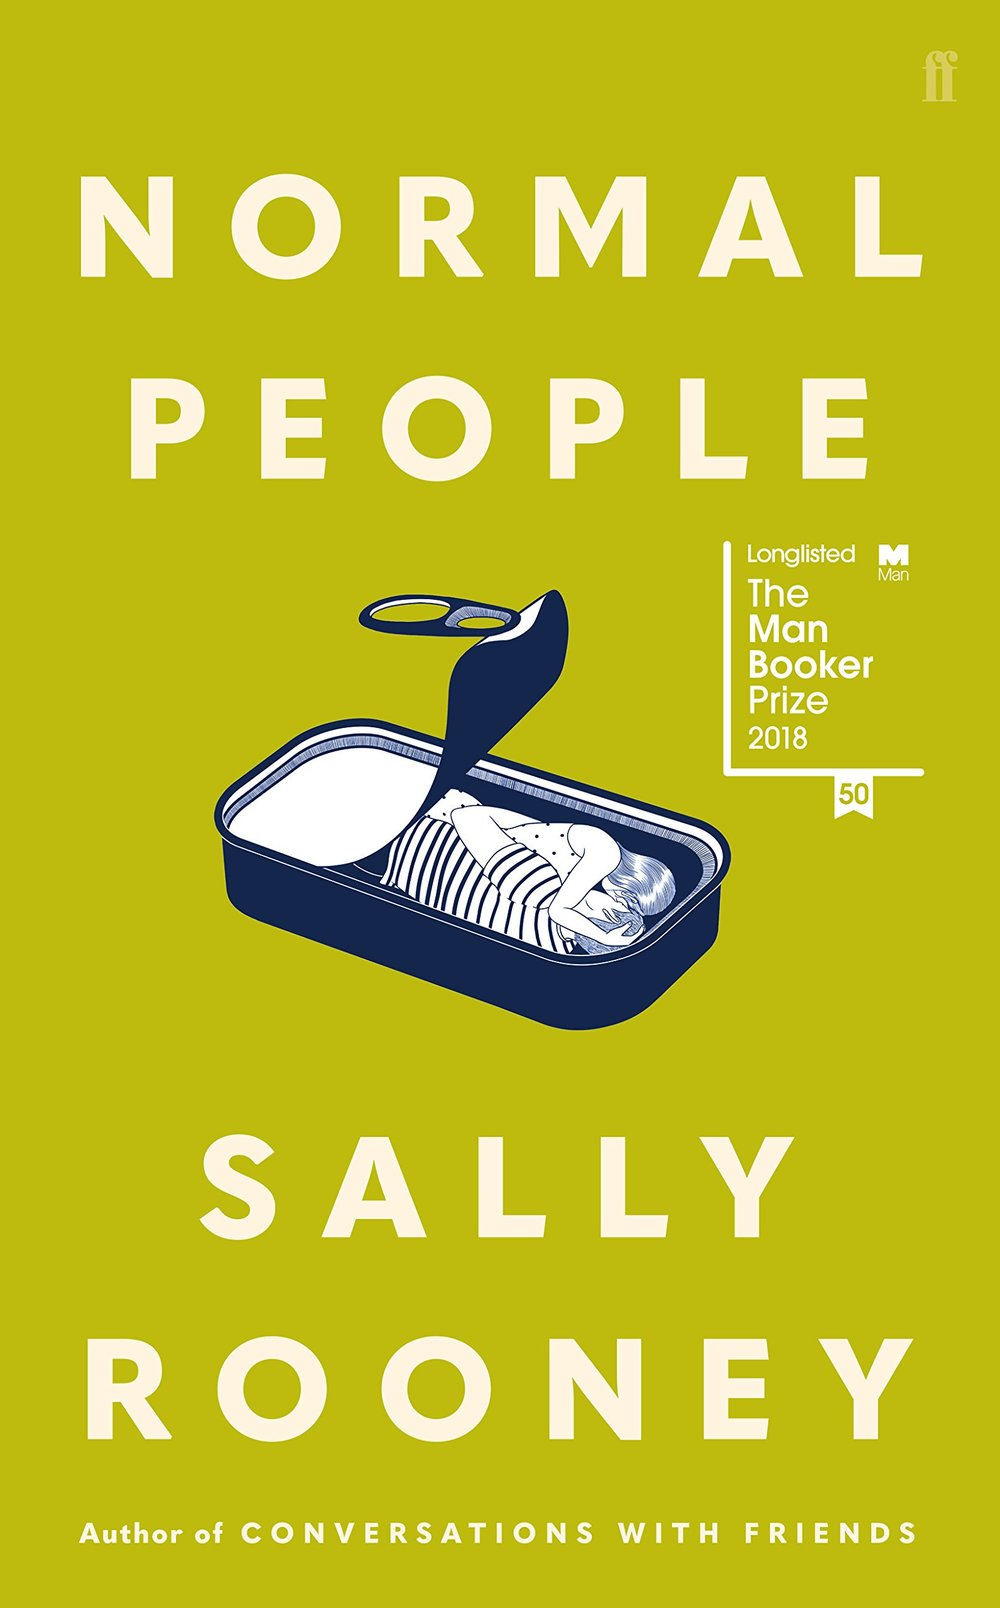 Normal People - AUTHOR: Sally RooneyISBN: 0571334644ISBN13: 9780571334643PUBLISHER: Faber & FaberRELEASE DATE: Aug 28th, 2018PAGES: 266 pagesEDITION LANGUAGE: EnglishSETTING: Ireland